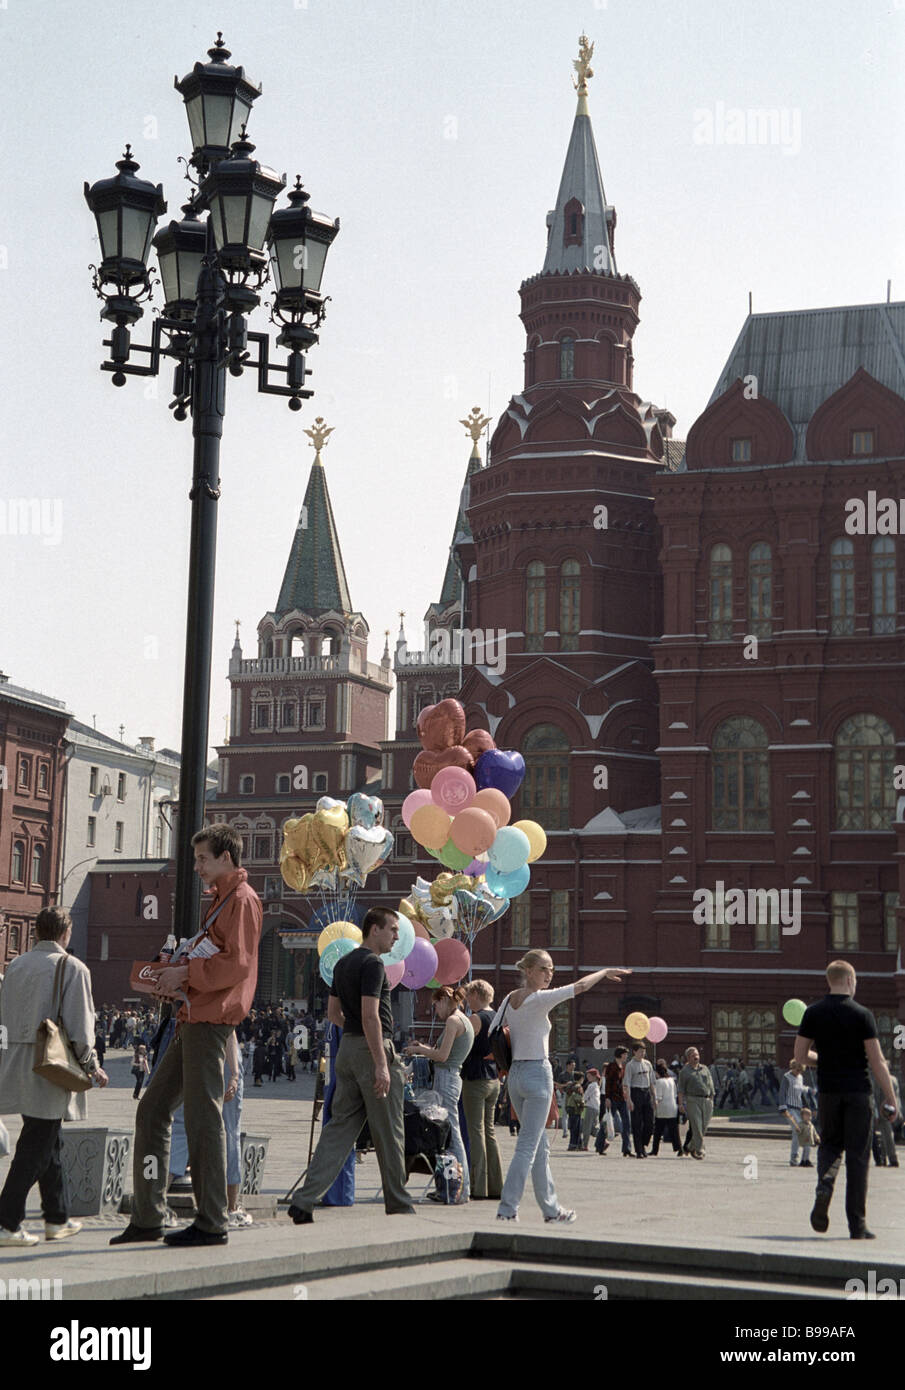 Moscow residents and guests strolling about Manezh Square - Stock Image